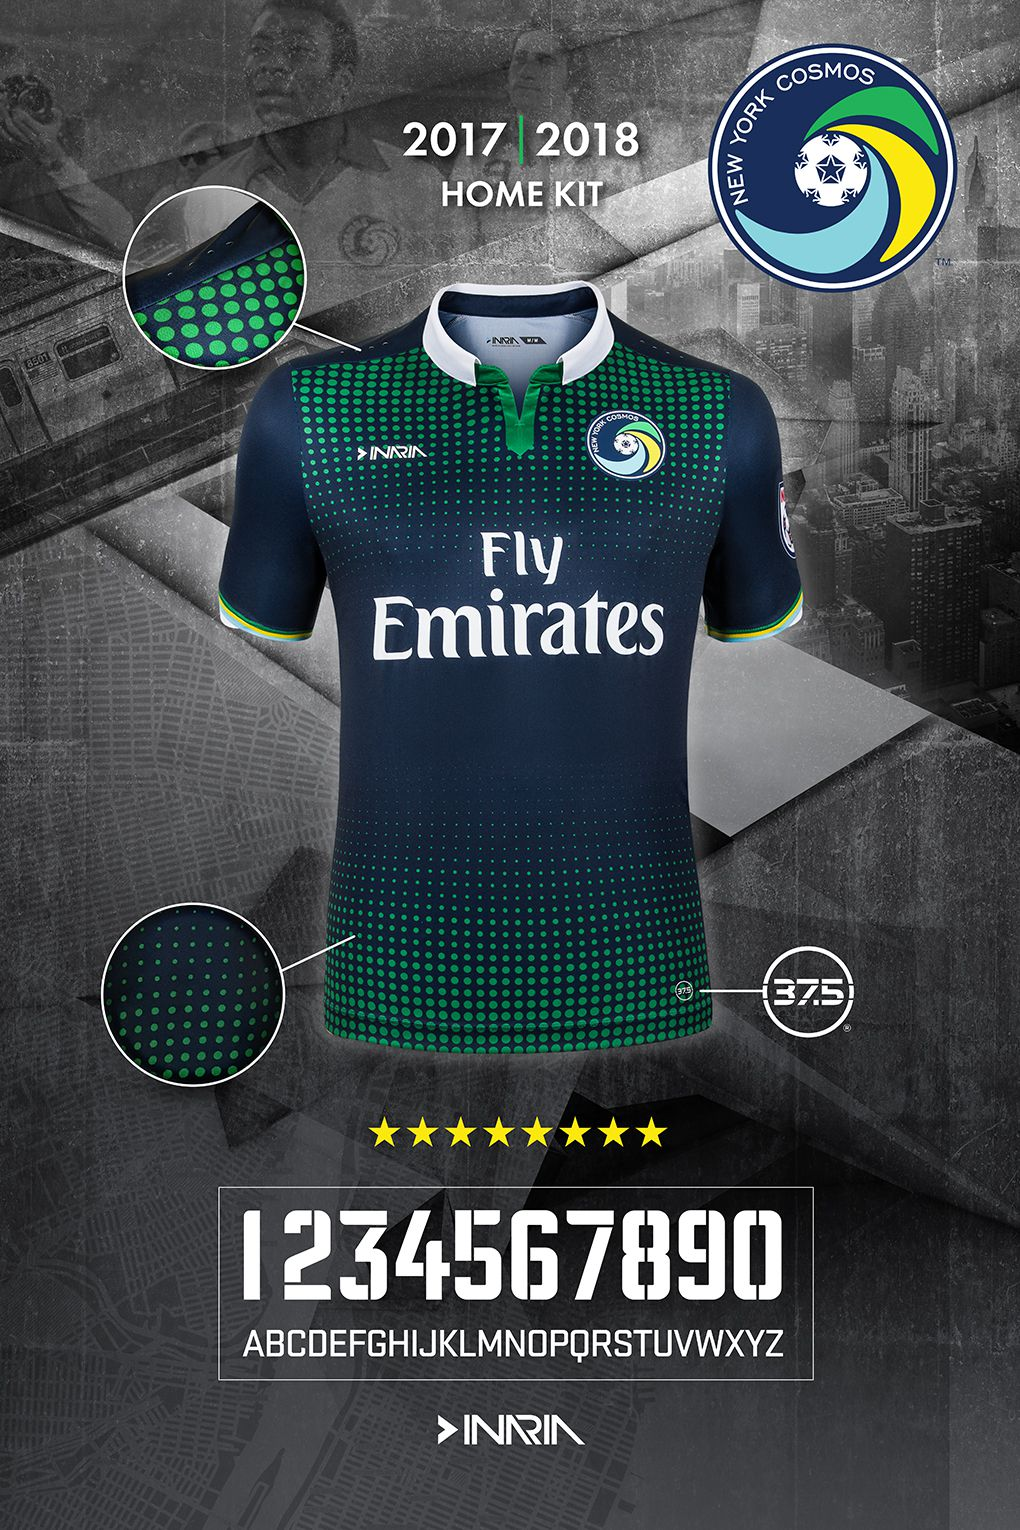 00db1eb22 The Cosmos  new home kit  https   www.inariasoccer.com news new-york-cosmos-and-inaria -announce-official-partnership